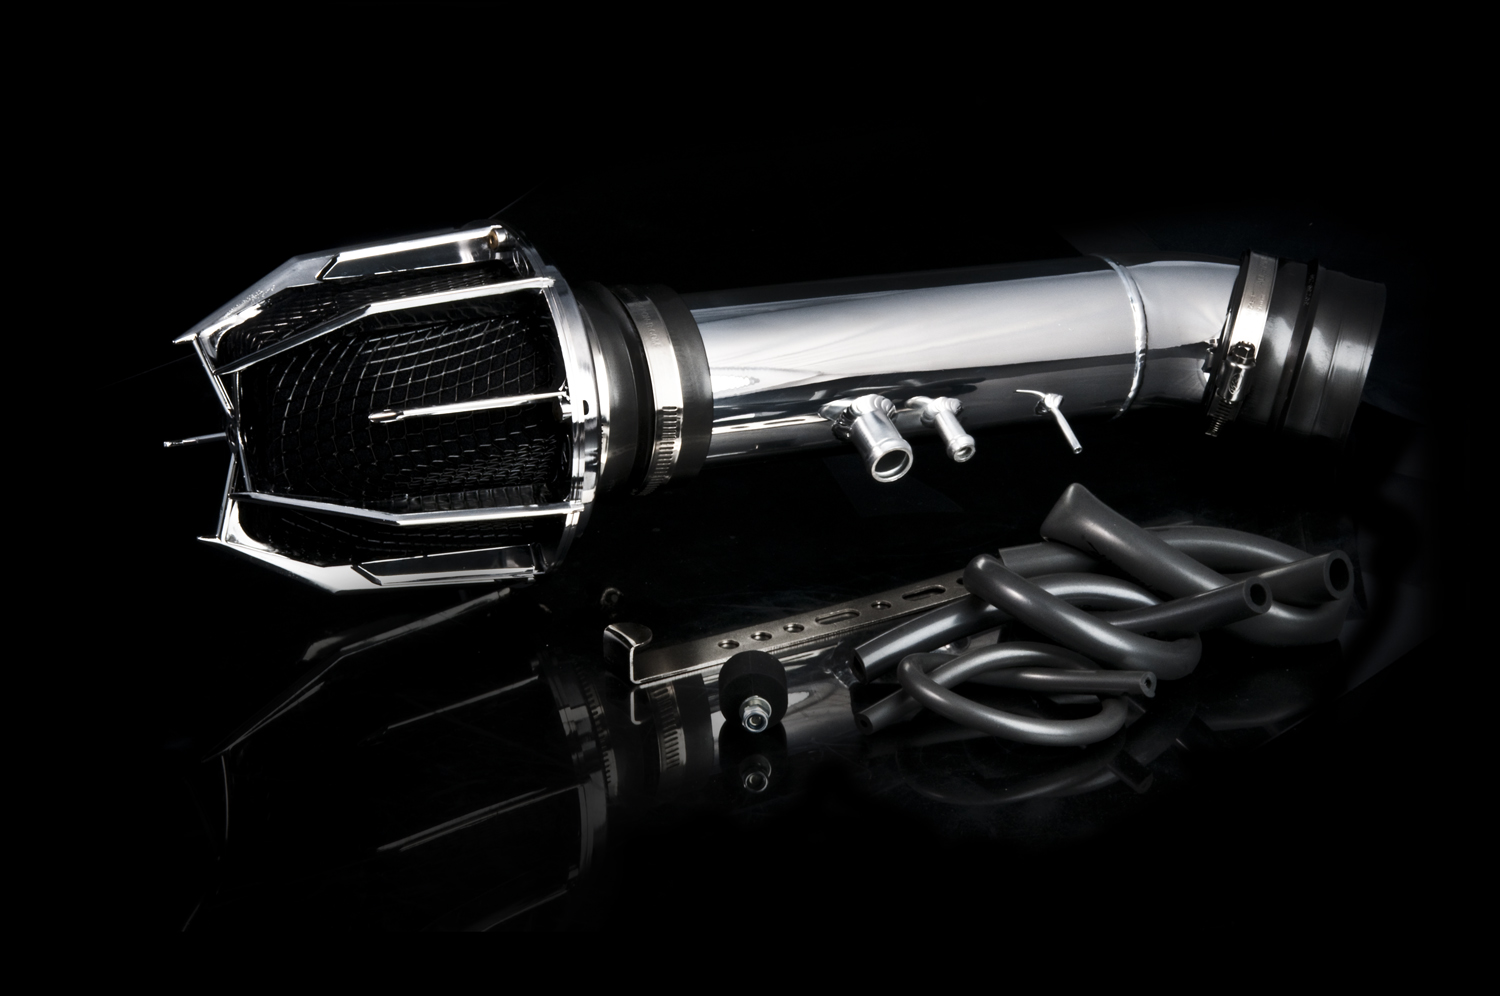 Acura Legend W/ TCcs 1991-1995 Weapon-R Dragon Air Intake